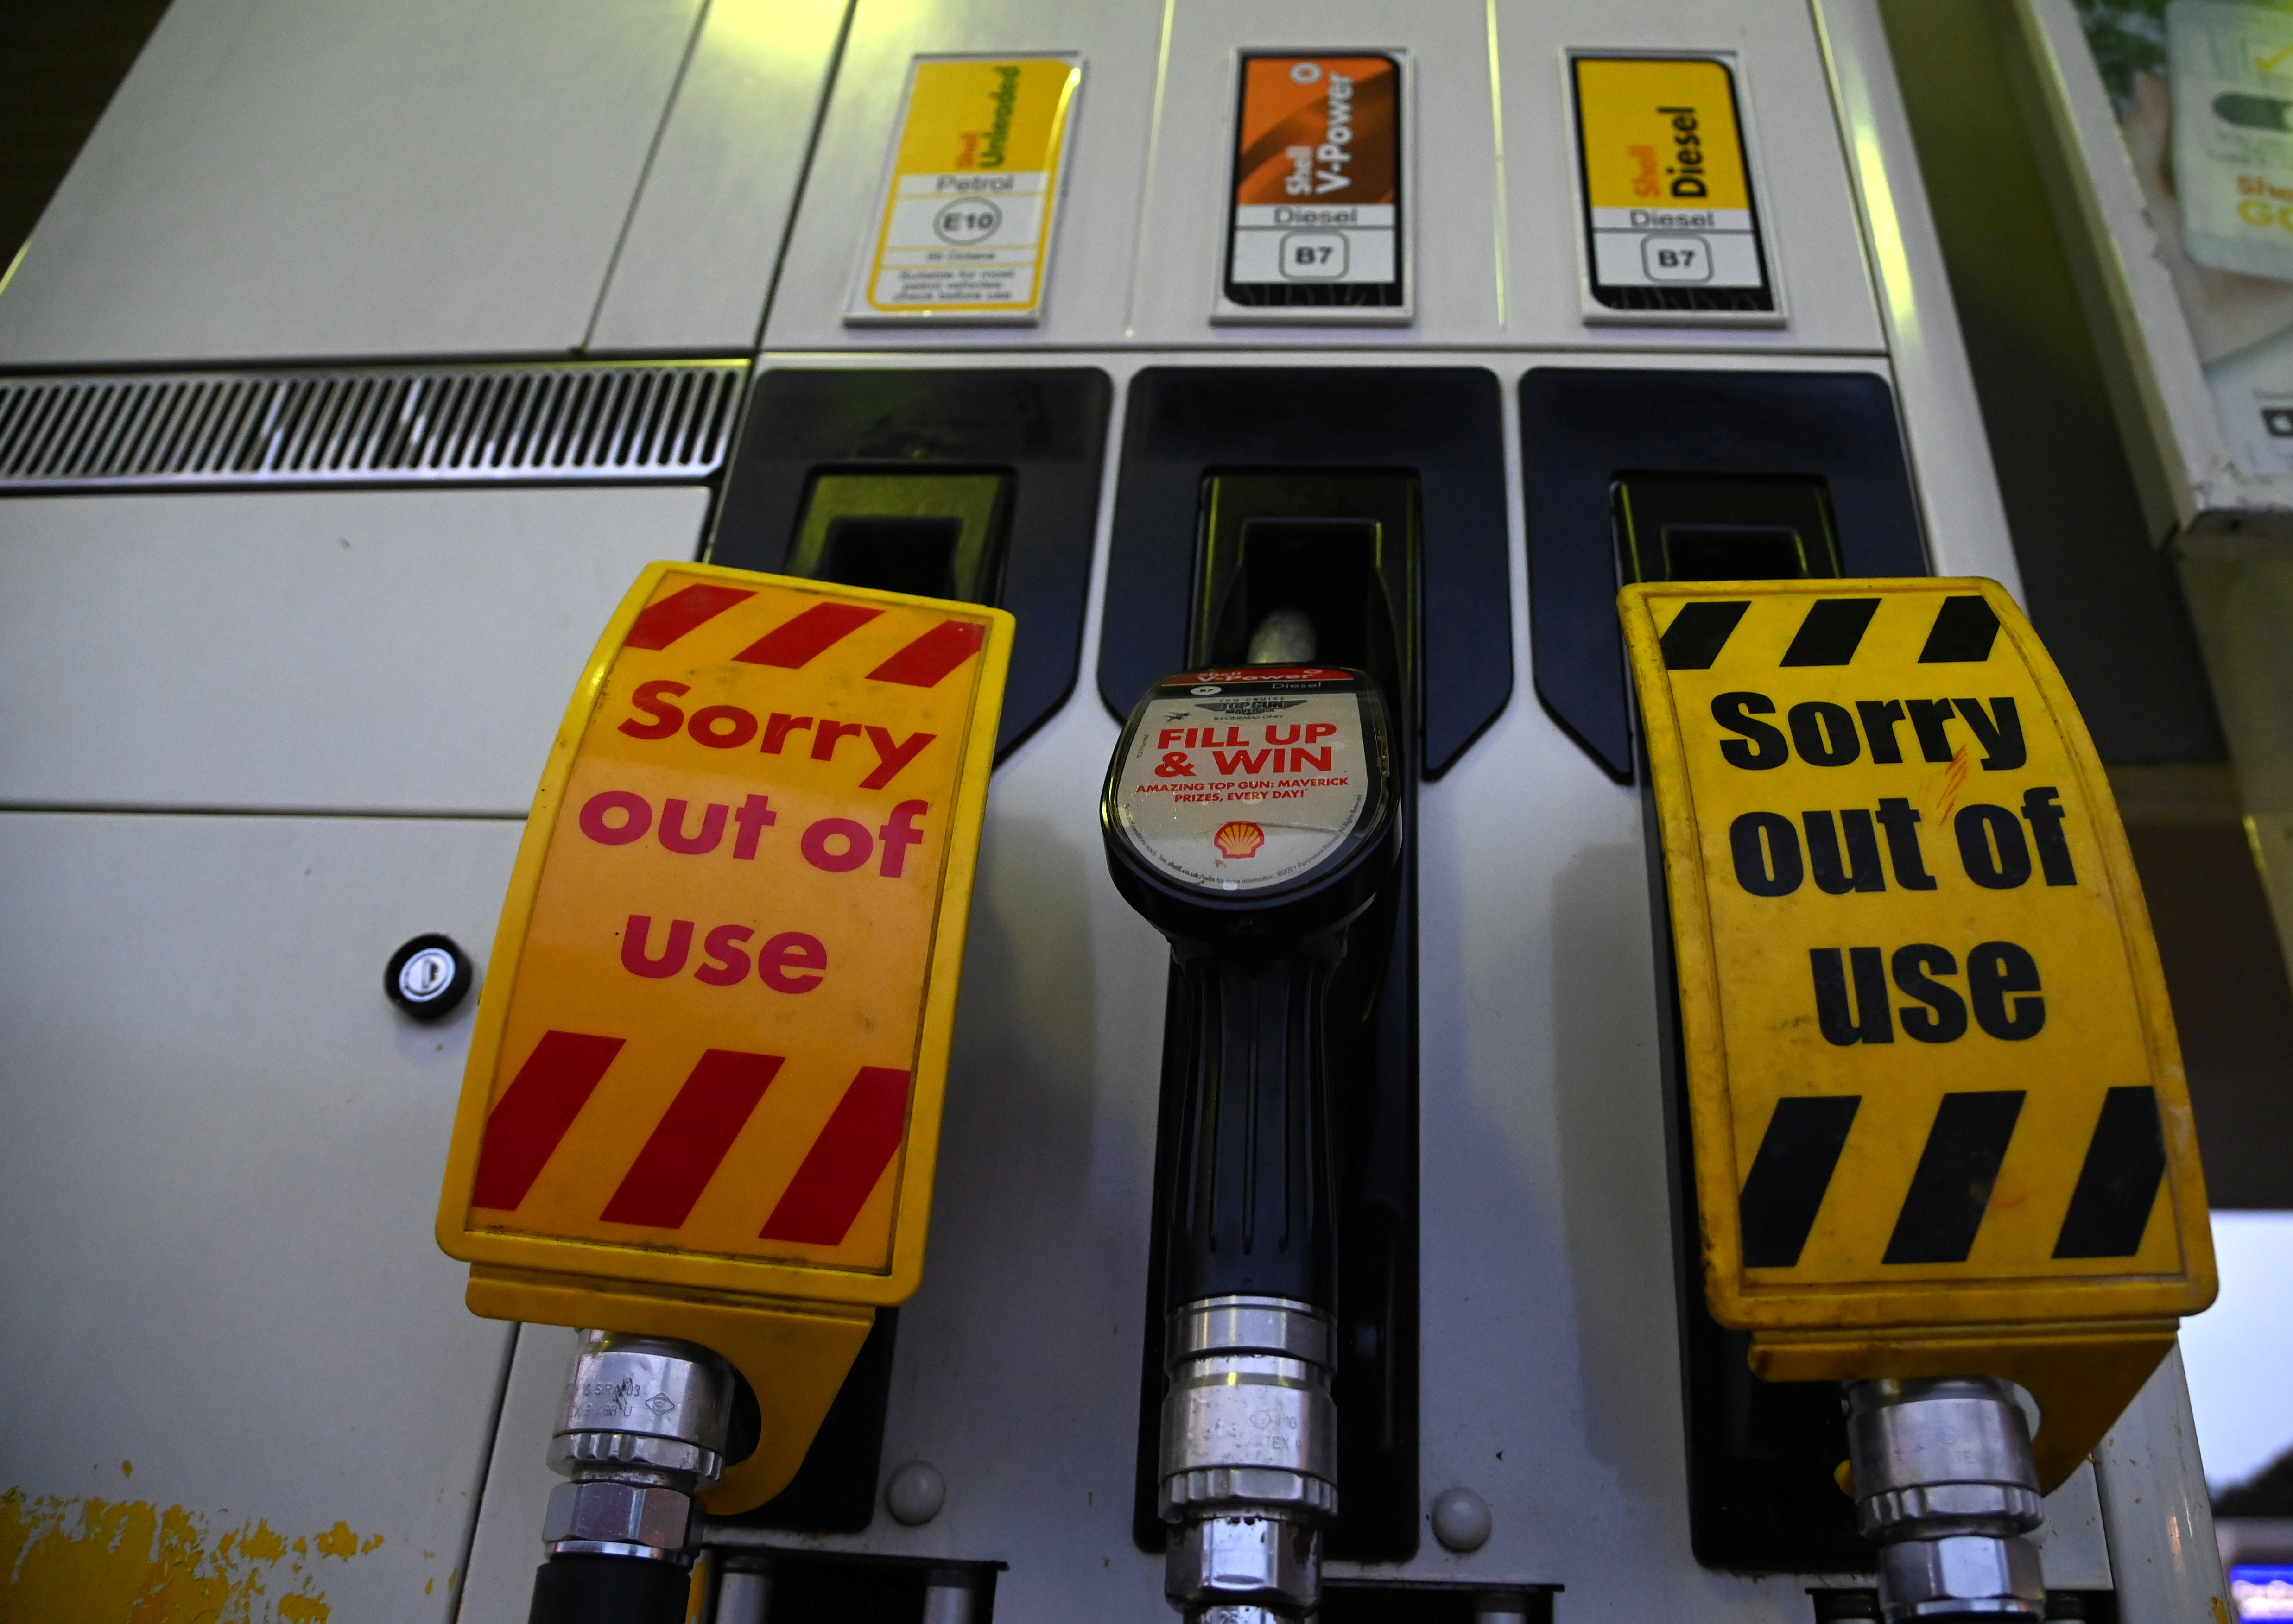 Out of use signs are placed over pumps at a Shell petrol station in London, Britain, September 24, 2021. REUTERS/Toby Melville